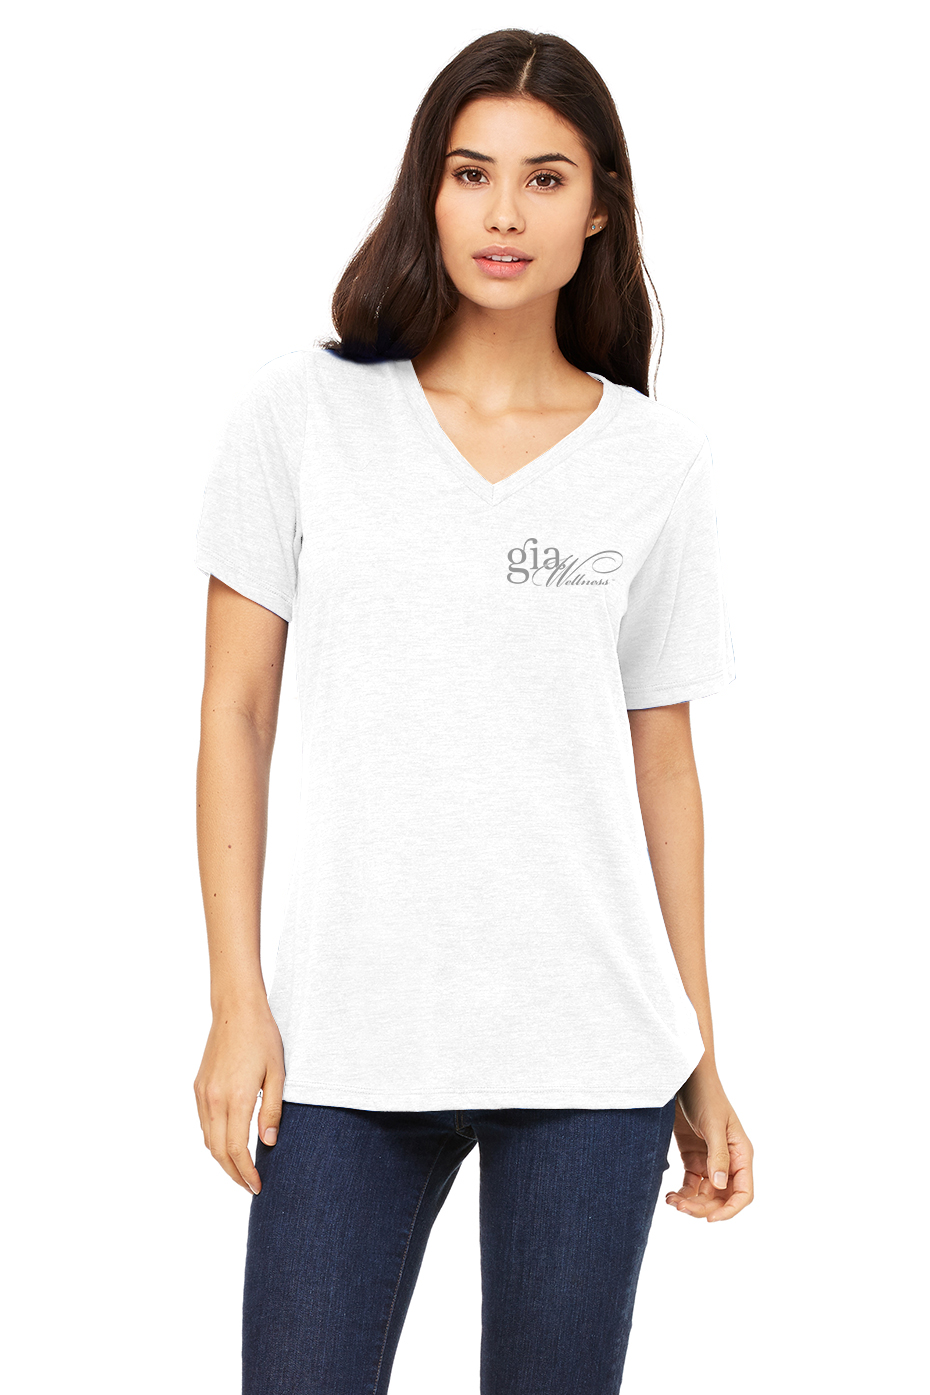 GIA_White-Ladies_V-Neck_GRAY